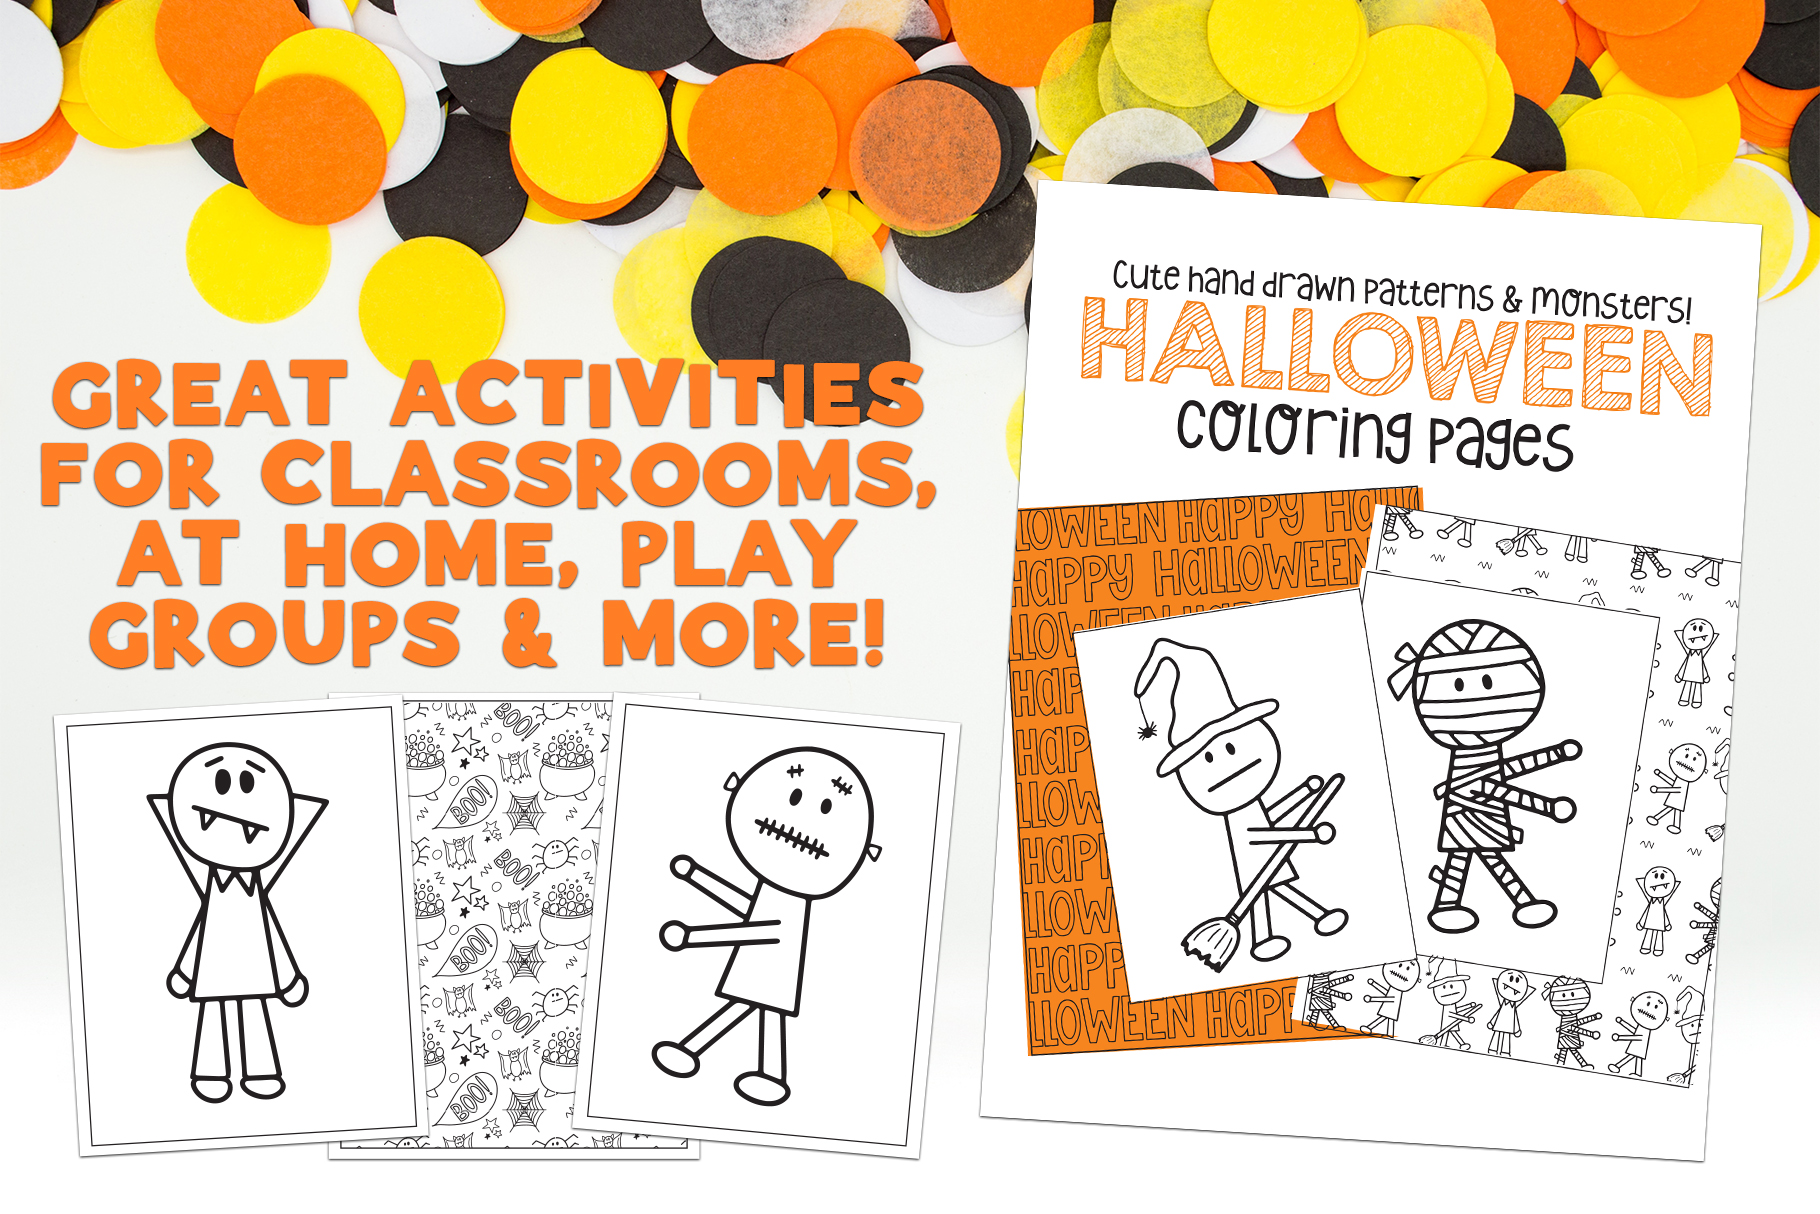 Halloween Coloring Pages & Activity example image 2